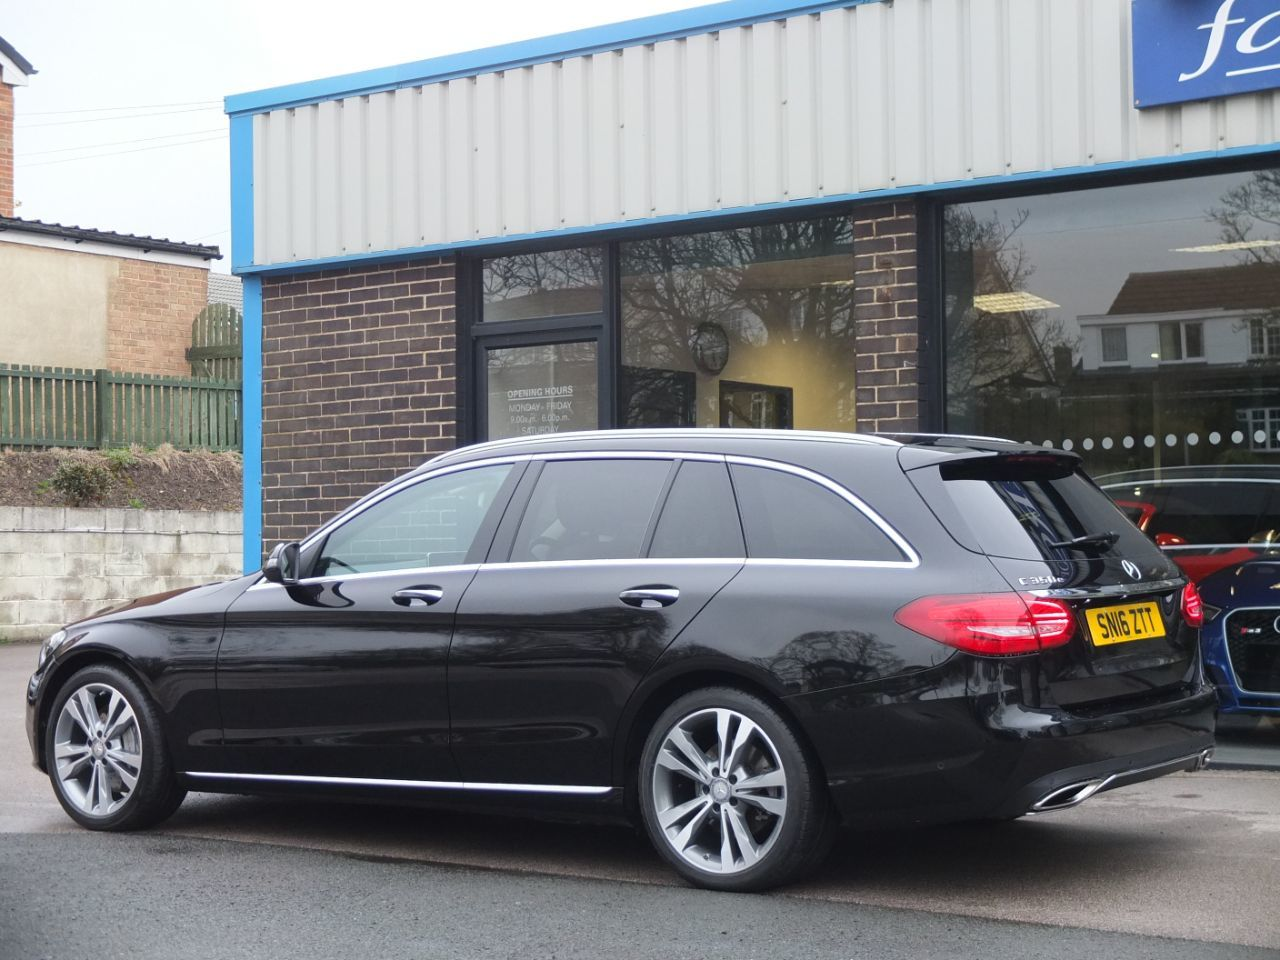 Mercedes-Benz C Class 2.0 Esate C350e Sport Premium Plus PHEV Auto Estate Petrol / Electric Hybrid Obsidian Black Metallic